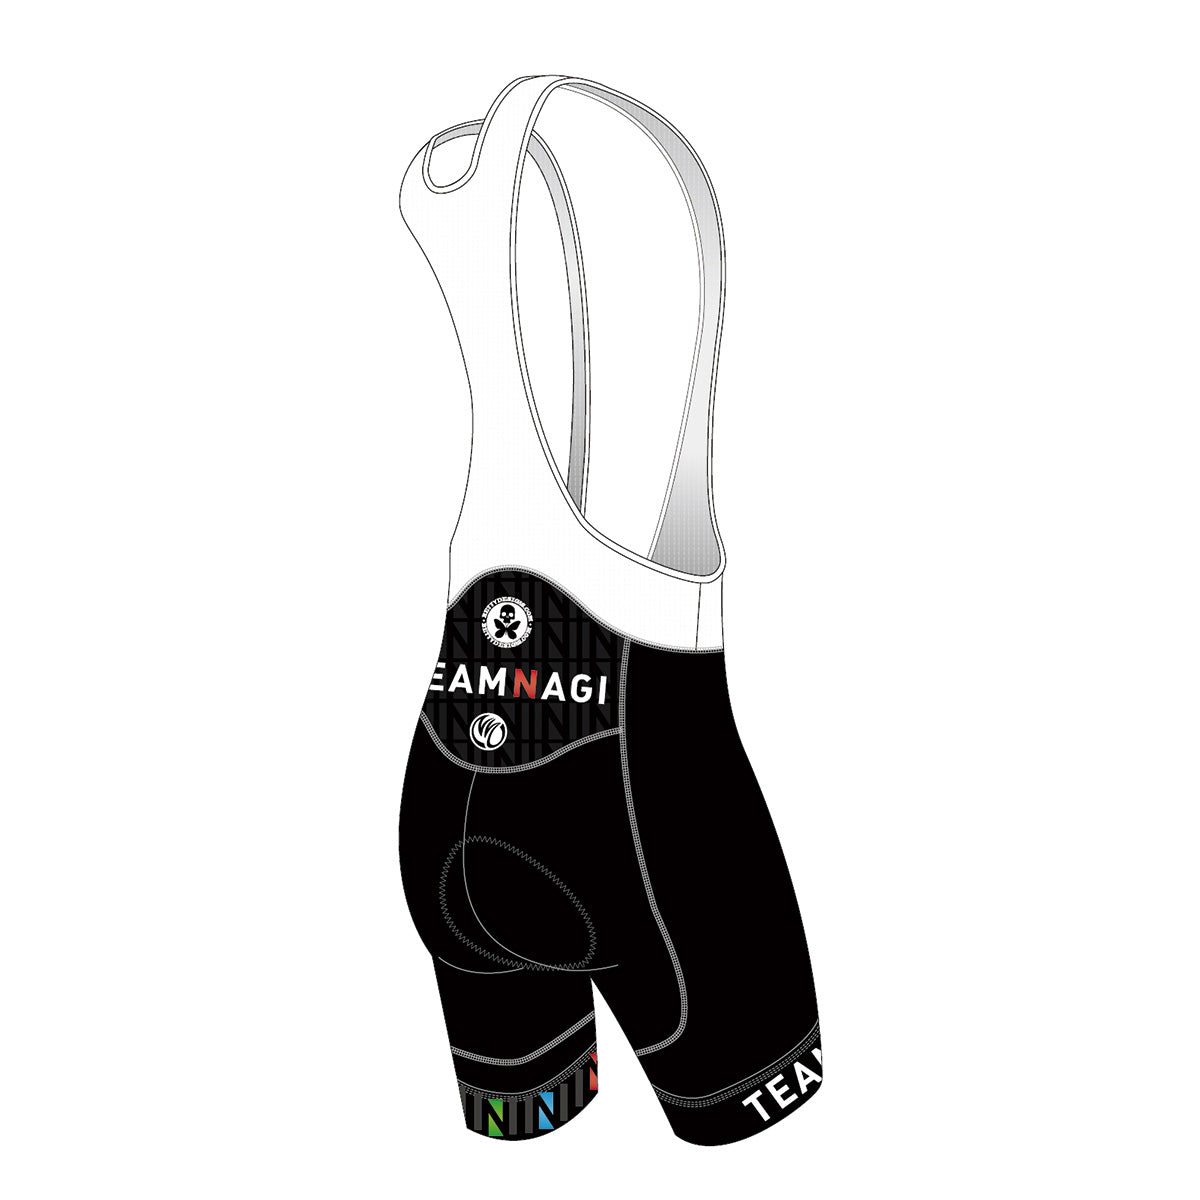 Team Nagi BLACK BRONZE Cycling Bib Shorts